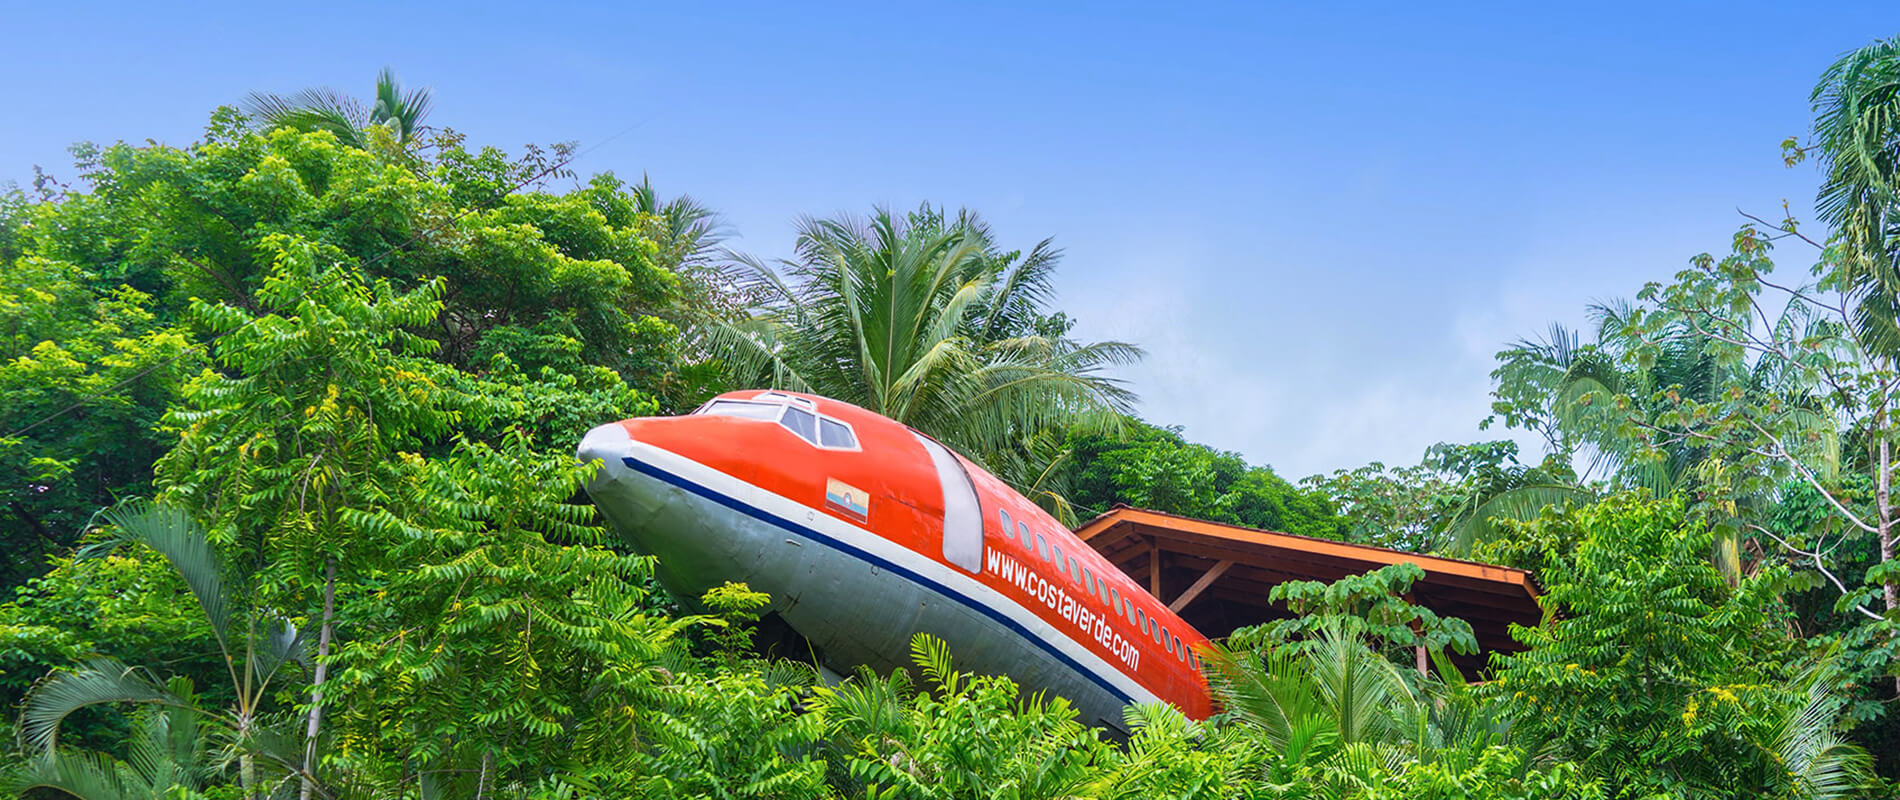 727 Fuselage Home, the Boeing Immersed in the Jungles of Costa Rica